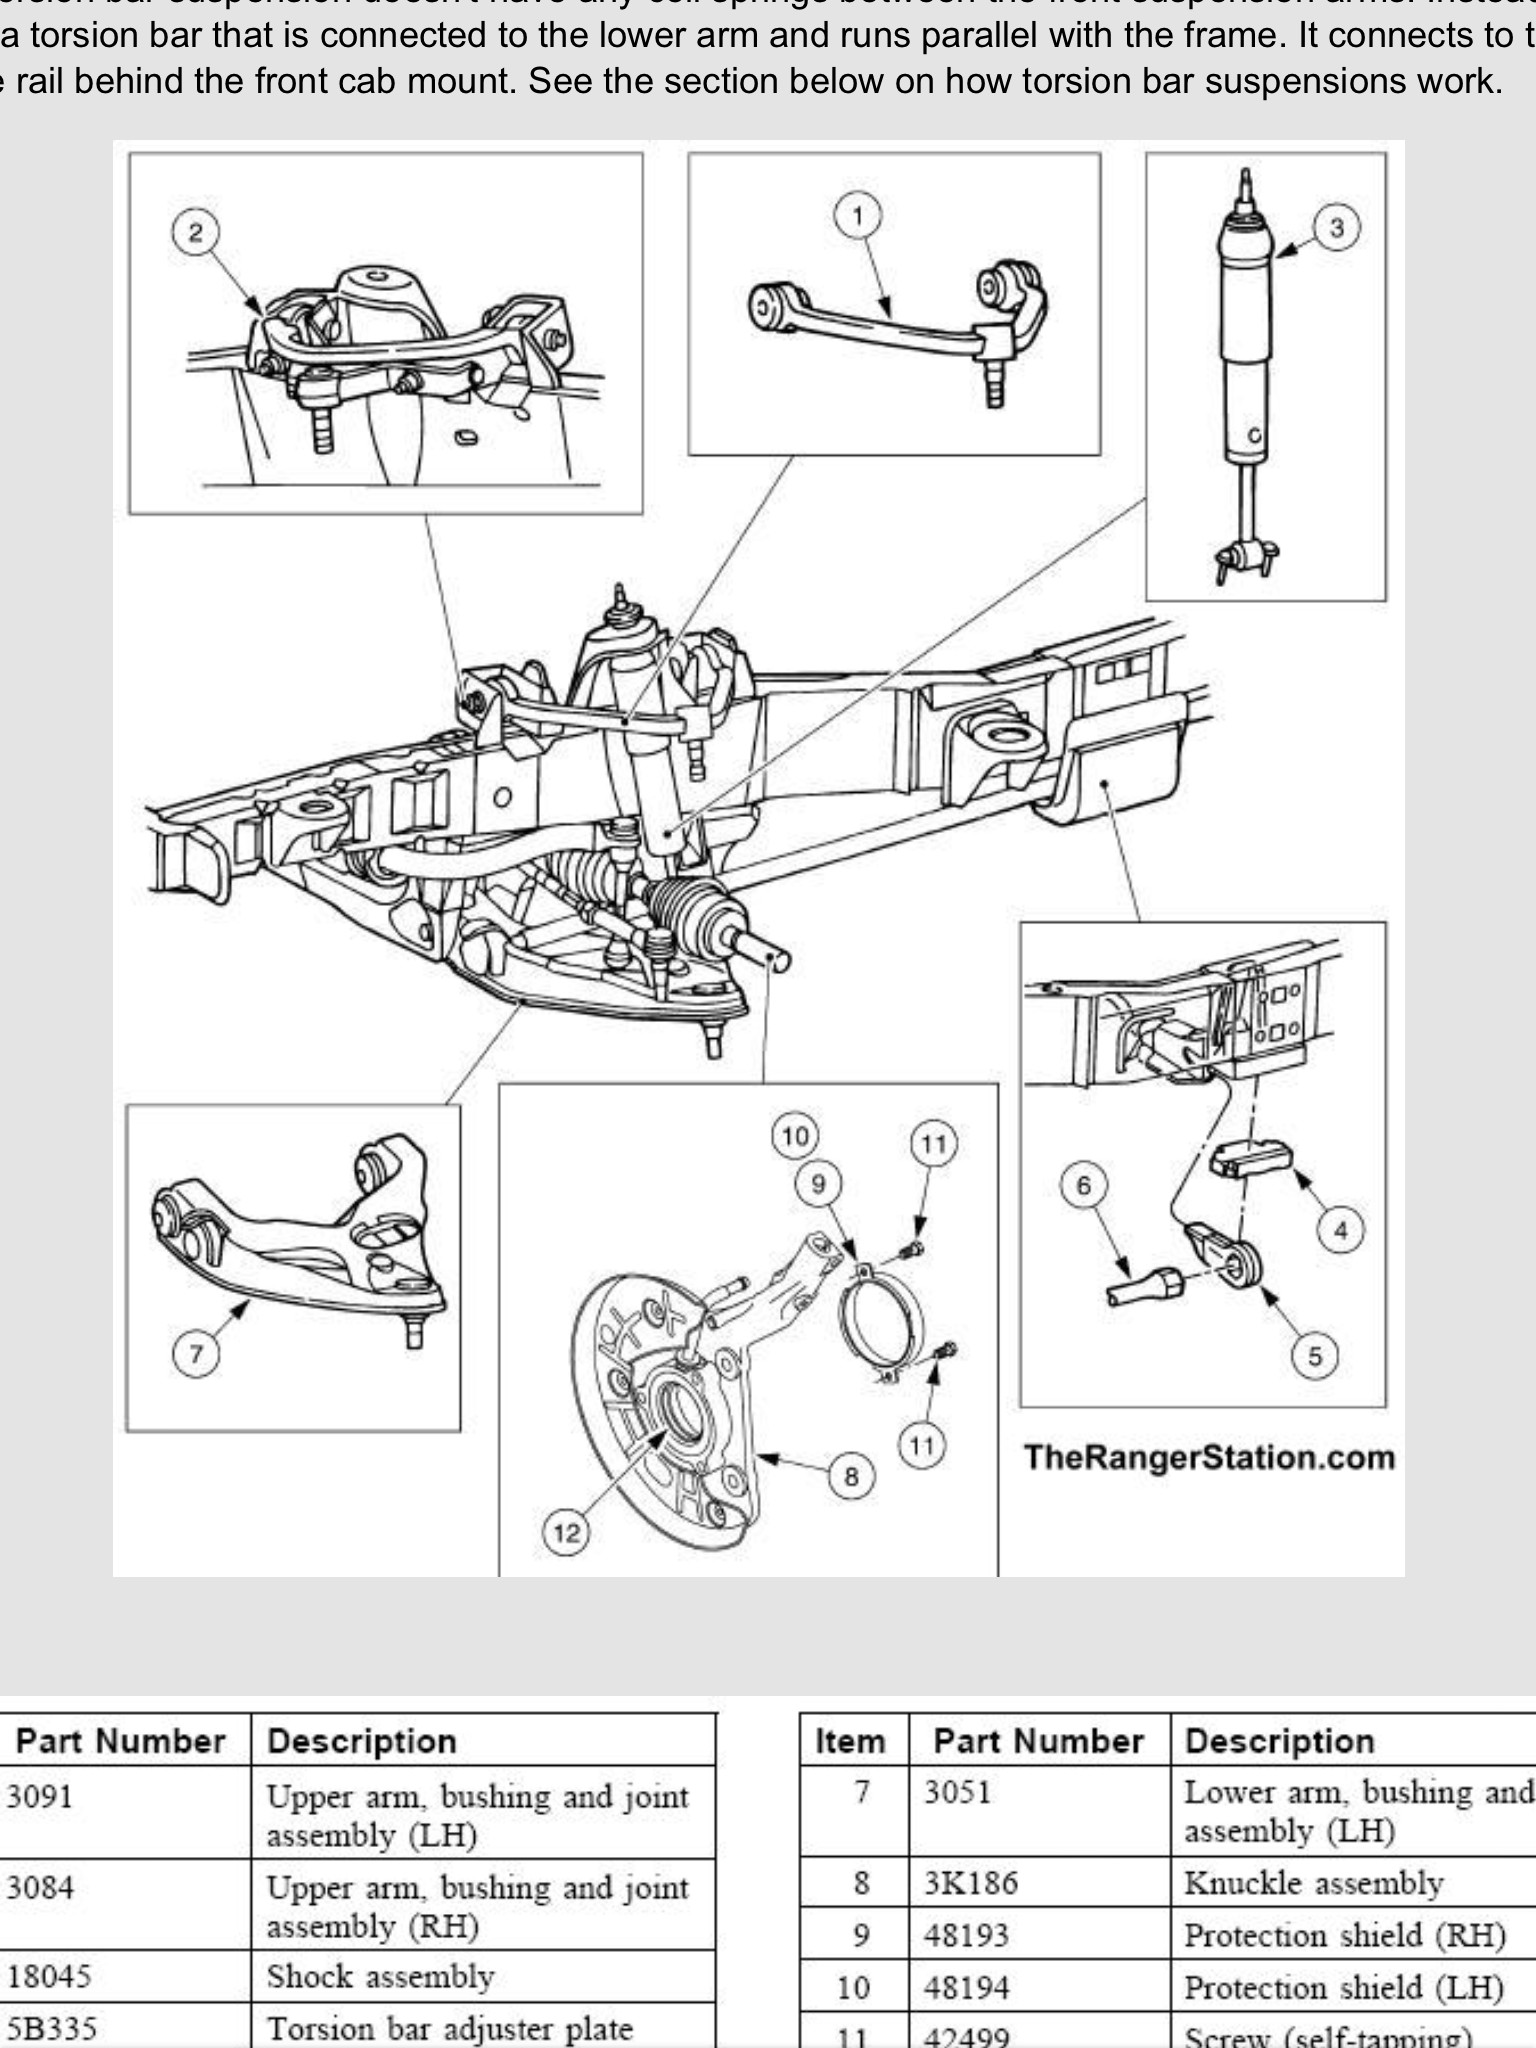 Car Parts Diagram Suspension Pin by Tedja Alvin On Serba Serbi Mesin Of Car Parts Diagram Suspension Diagram Parts Under A Car Basic Diagram Car Parts ] Saab Screw